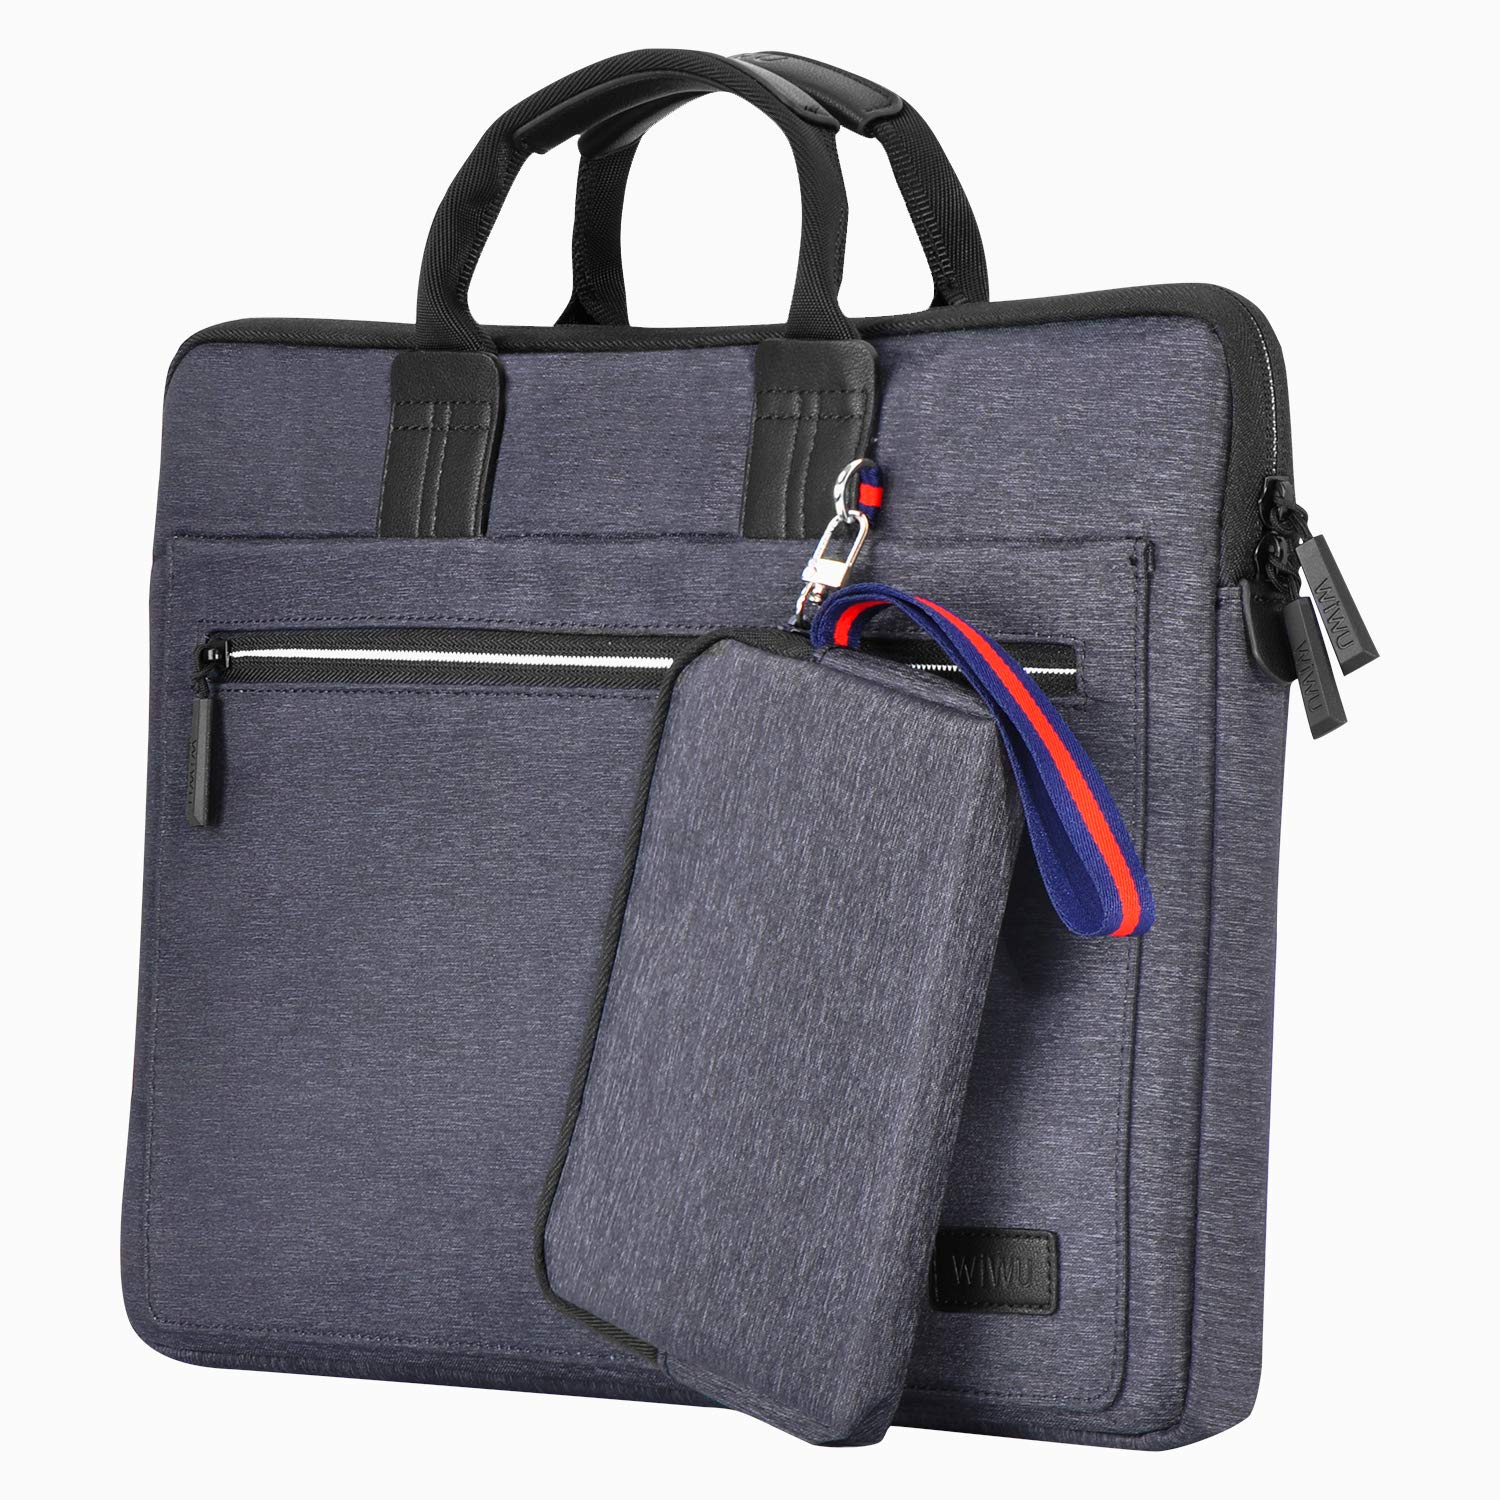 EXCPDT Laptop Sleeve Bag Compatible 14 Inch MacBook Pro, MacBook Air, Notebook, Slim Water Resistant Protective Carrying Case for Business Casual or School (Gray)